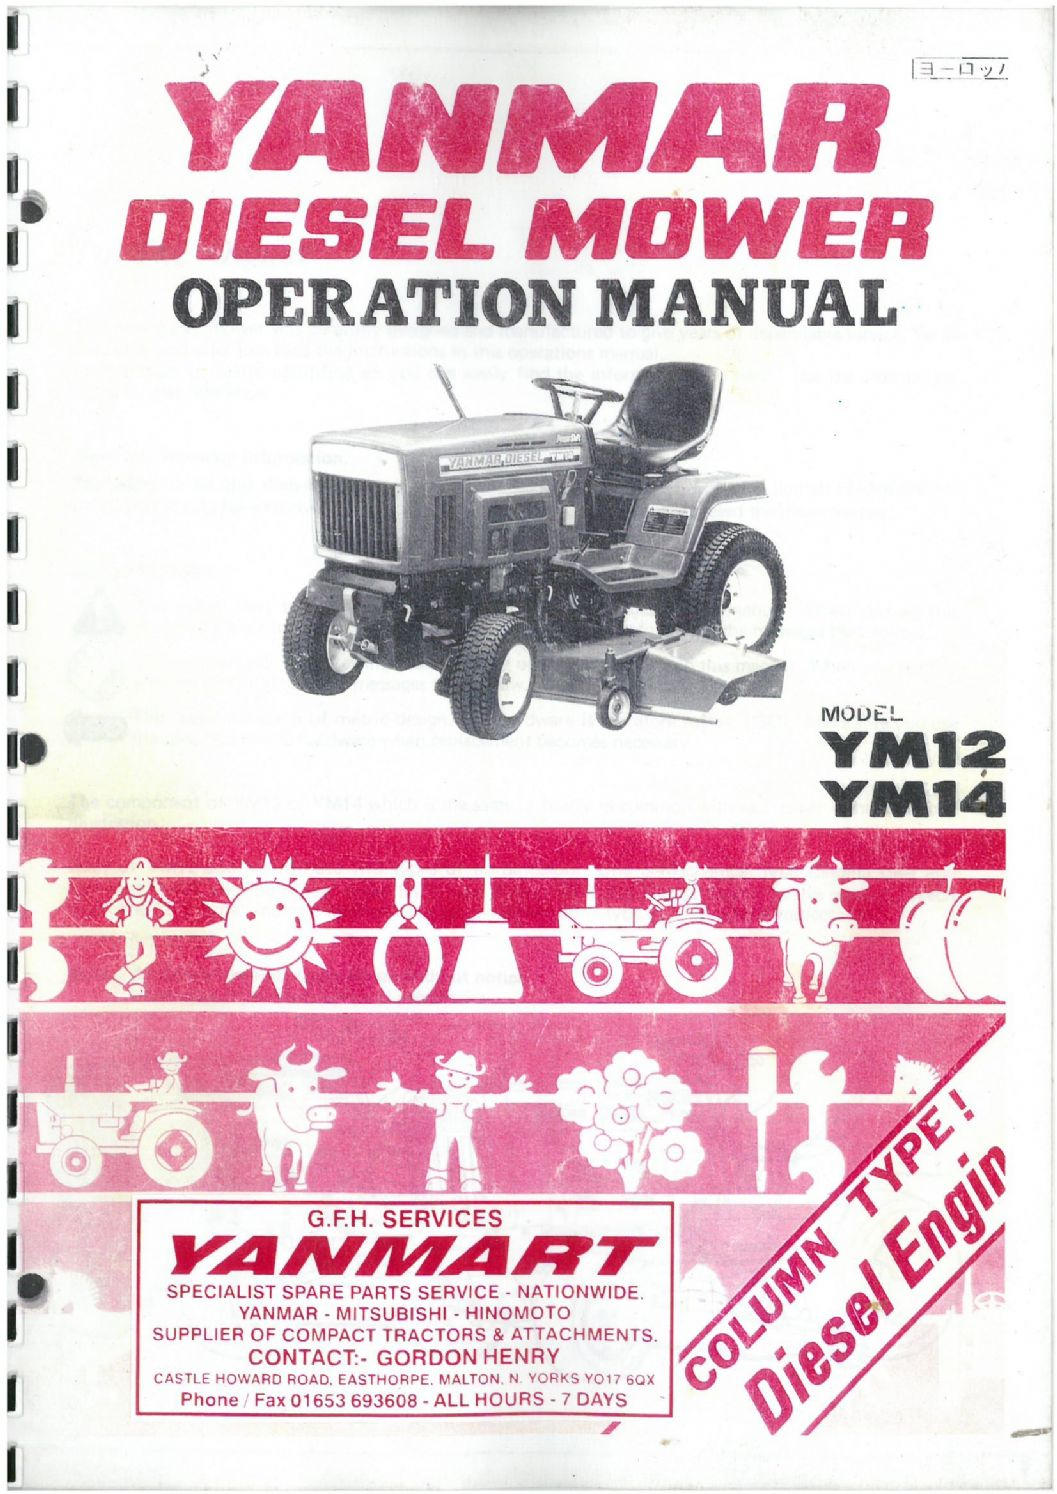 Yanmar Tractor Diagrams Building A Wiring Diagram Remote Starter Relay Ym12 Ym14 Operators Manual Hydraulic Schematics